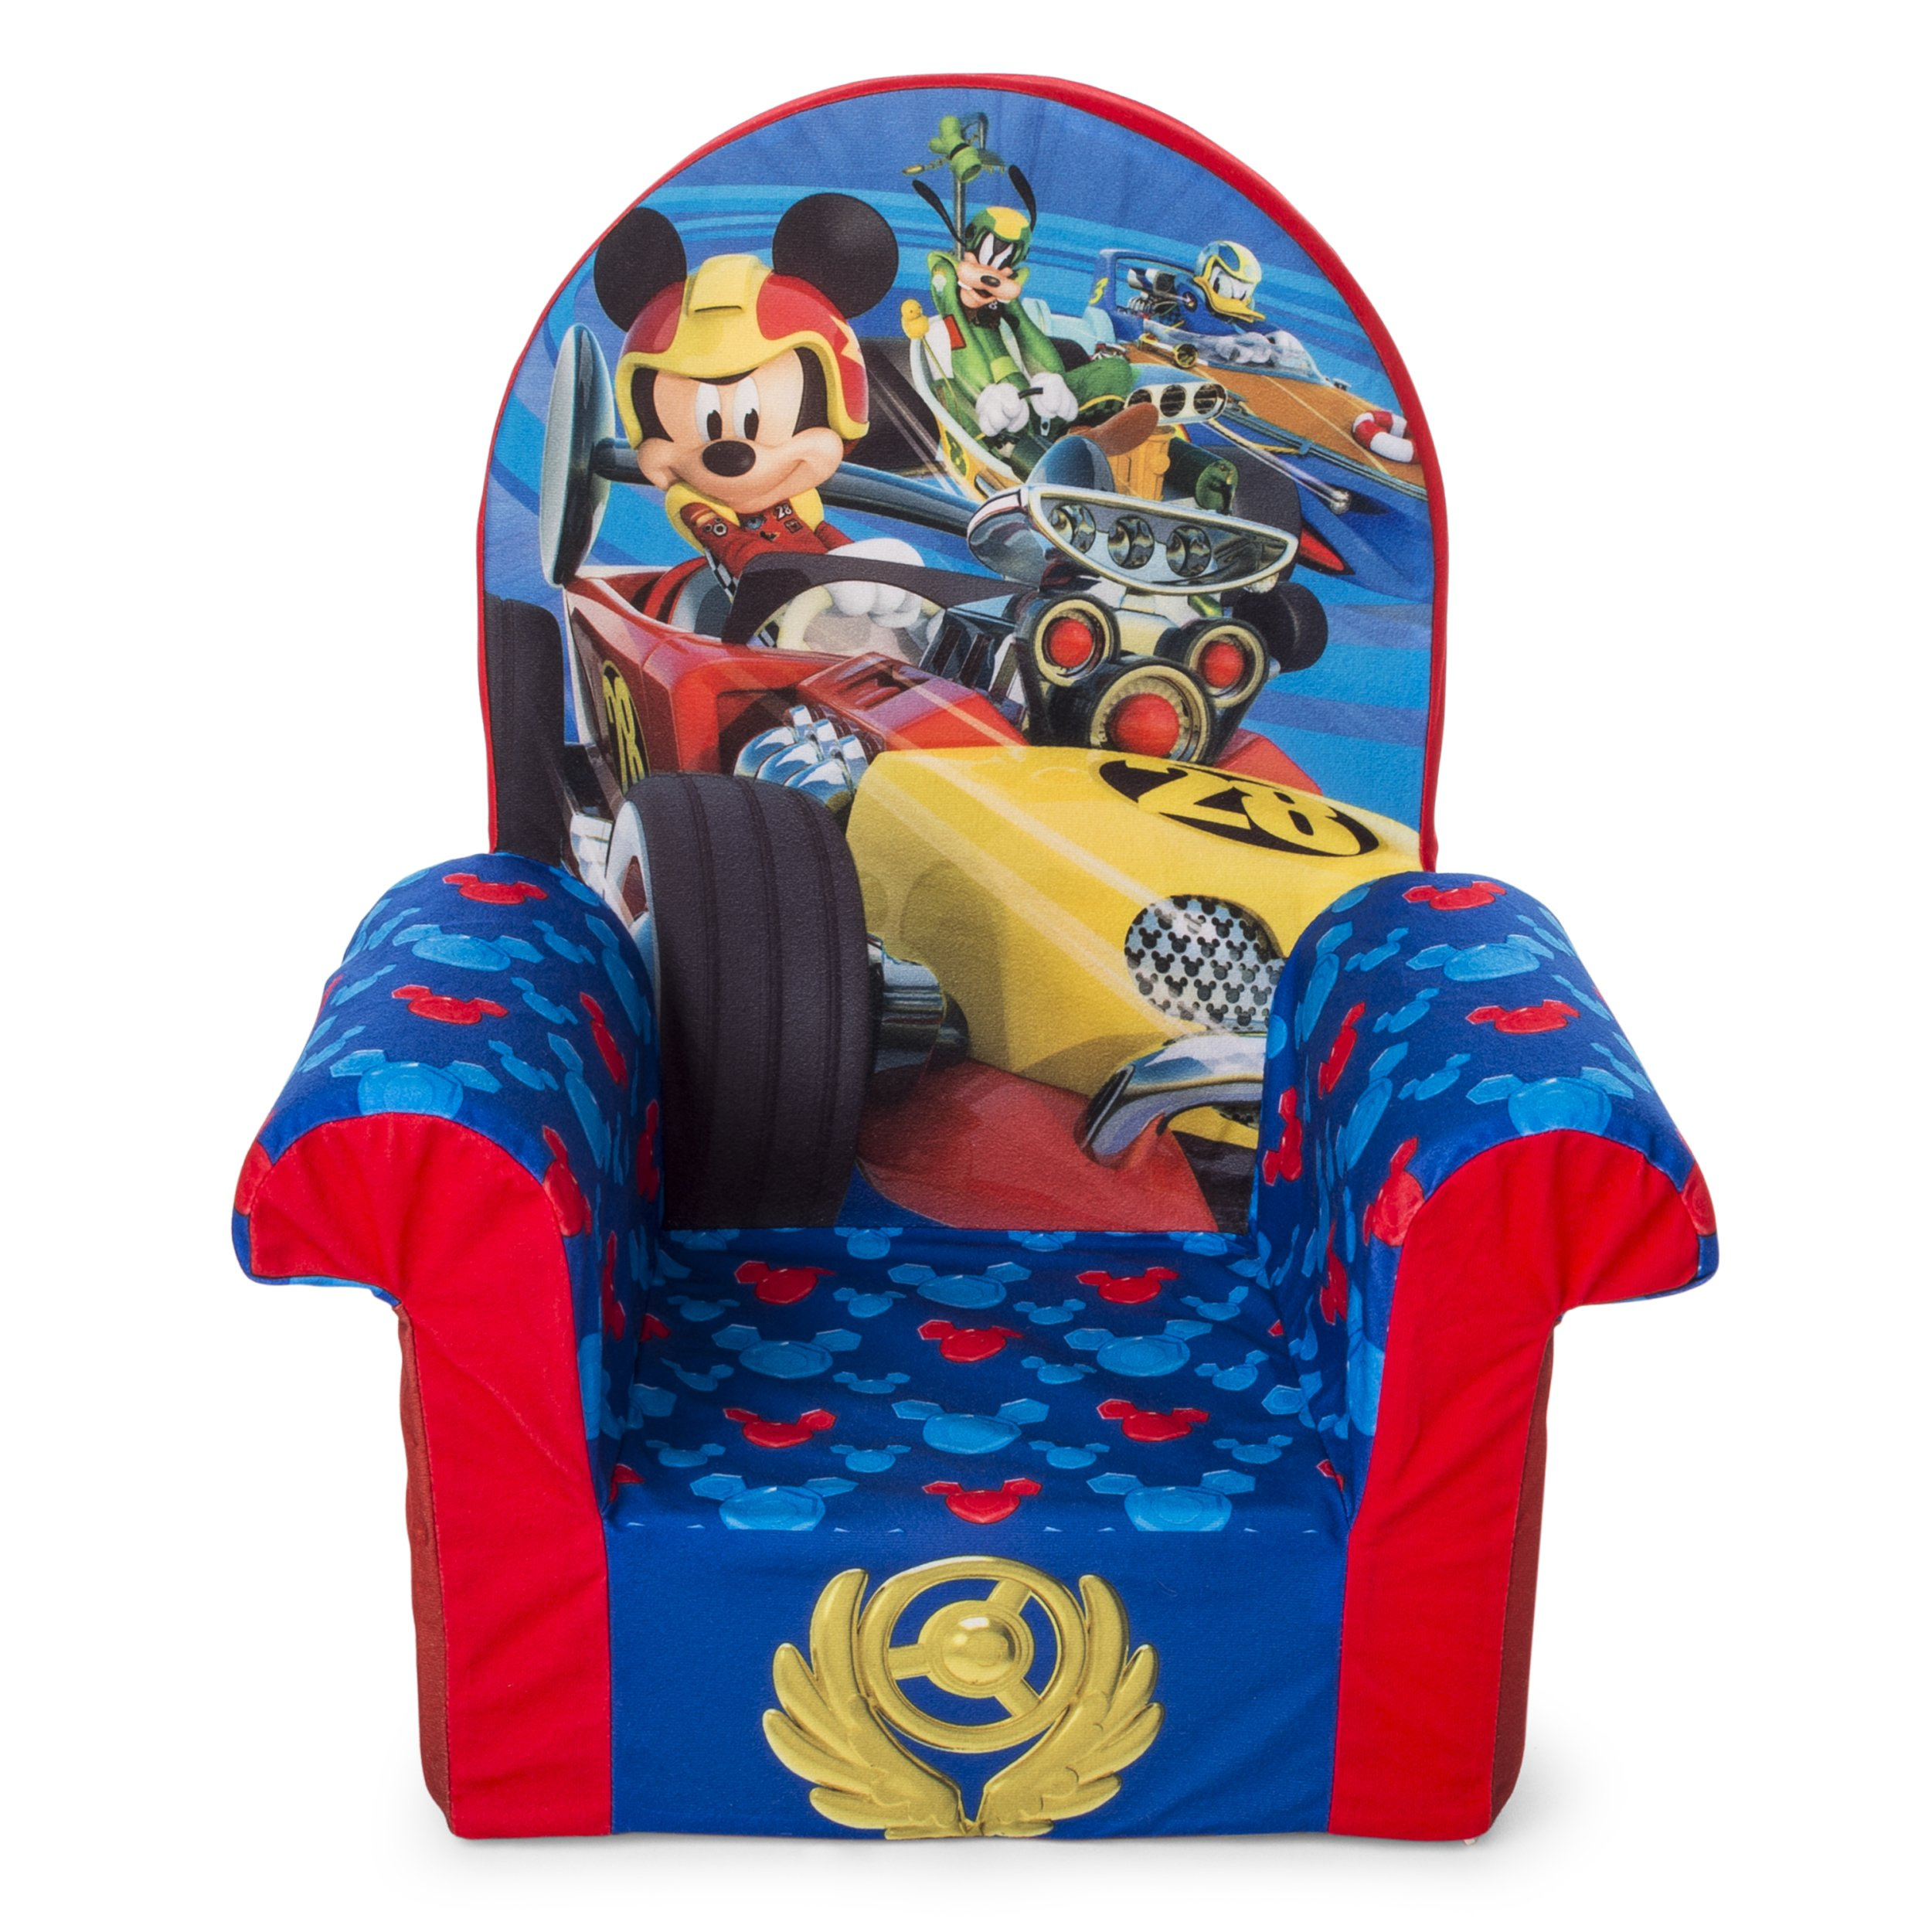 Marshmallow Furniture, Children's Foam High Back Chair, Disney Mickey Mouse Roadsters High Back Chair by Marshmallow Furniture